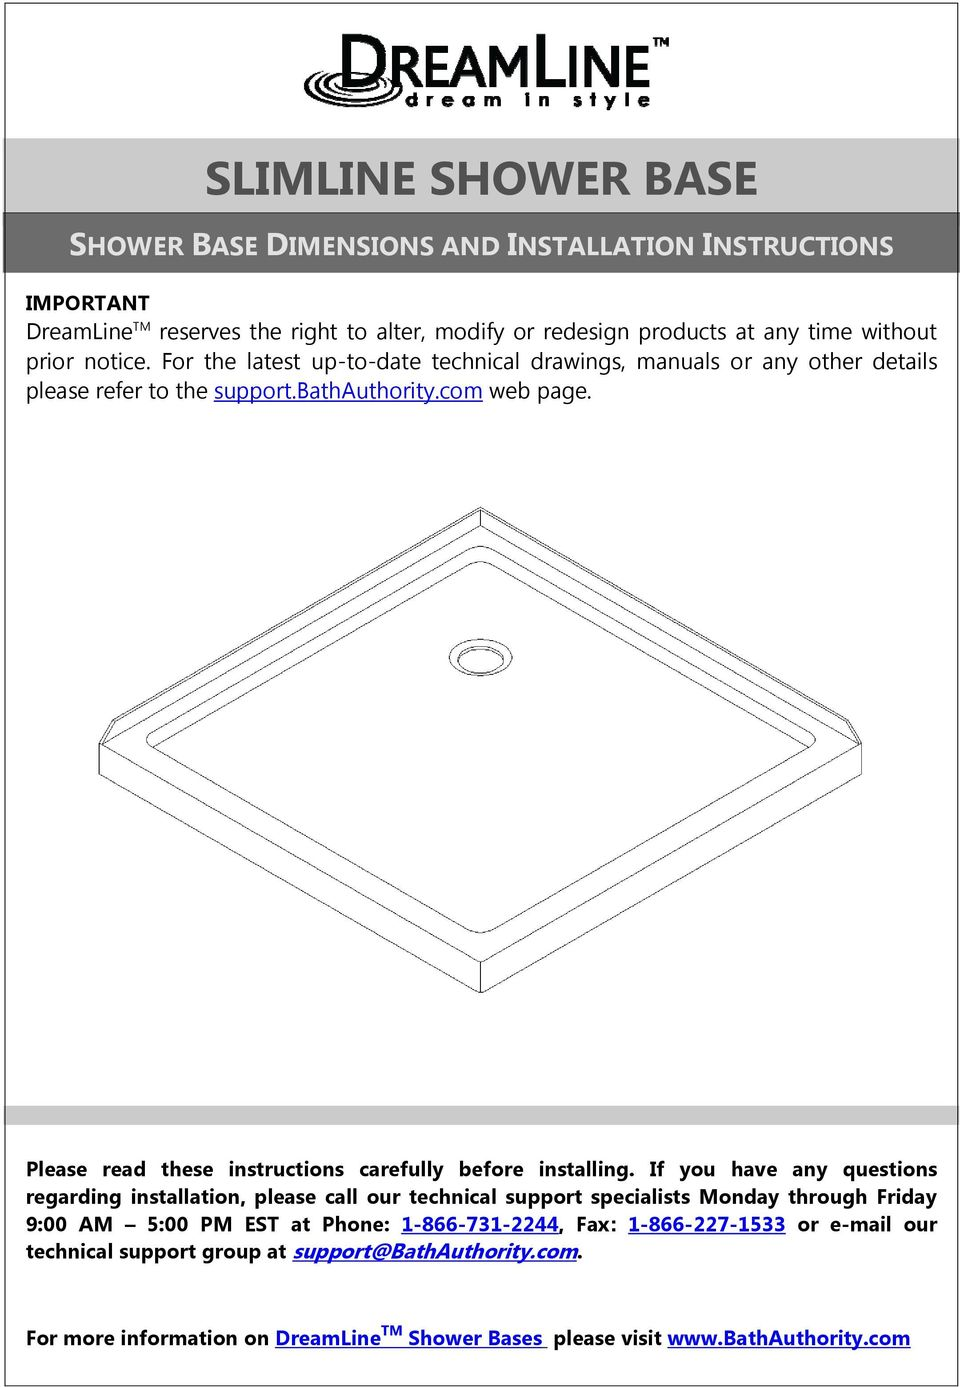 Please read these instructions carefully before installing.